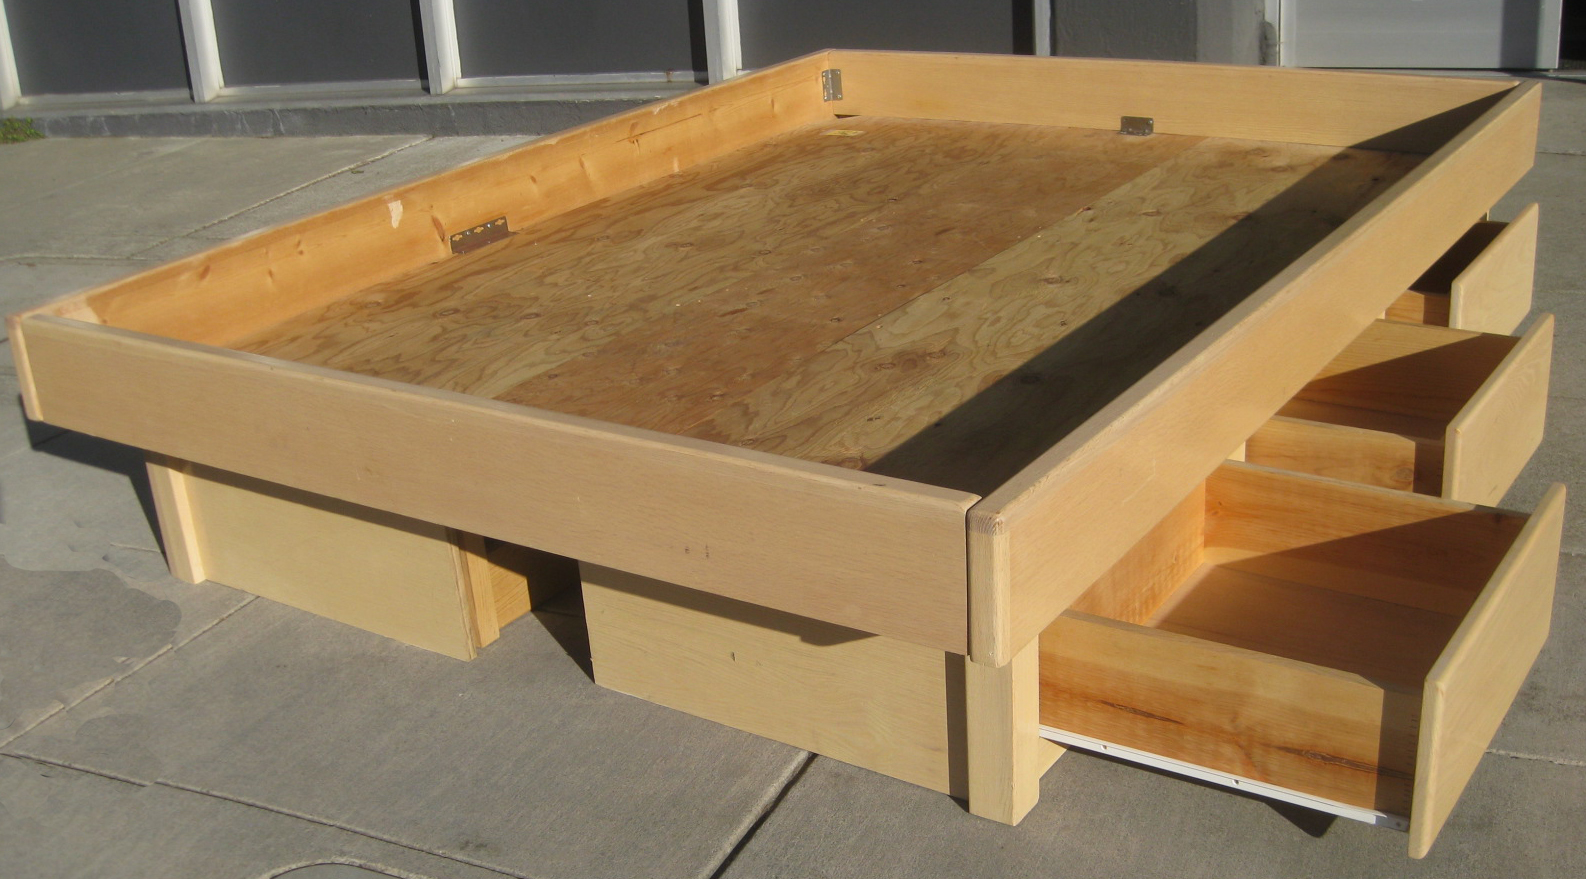 Plans For Building A Platform Bed With Storage | scyci.com